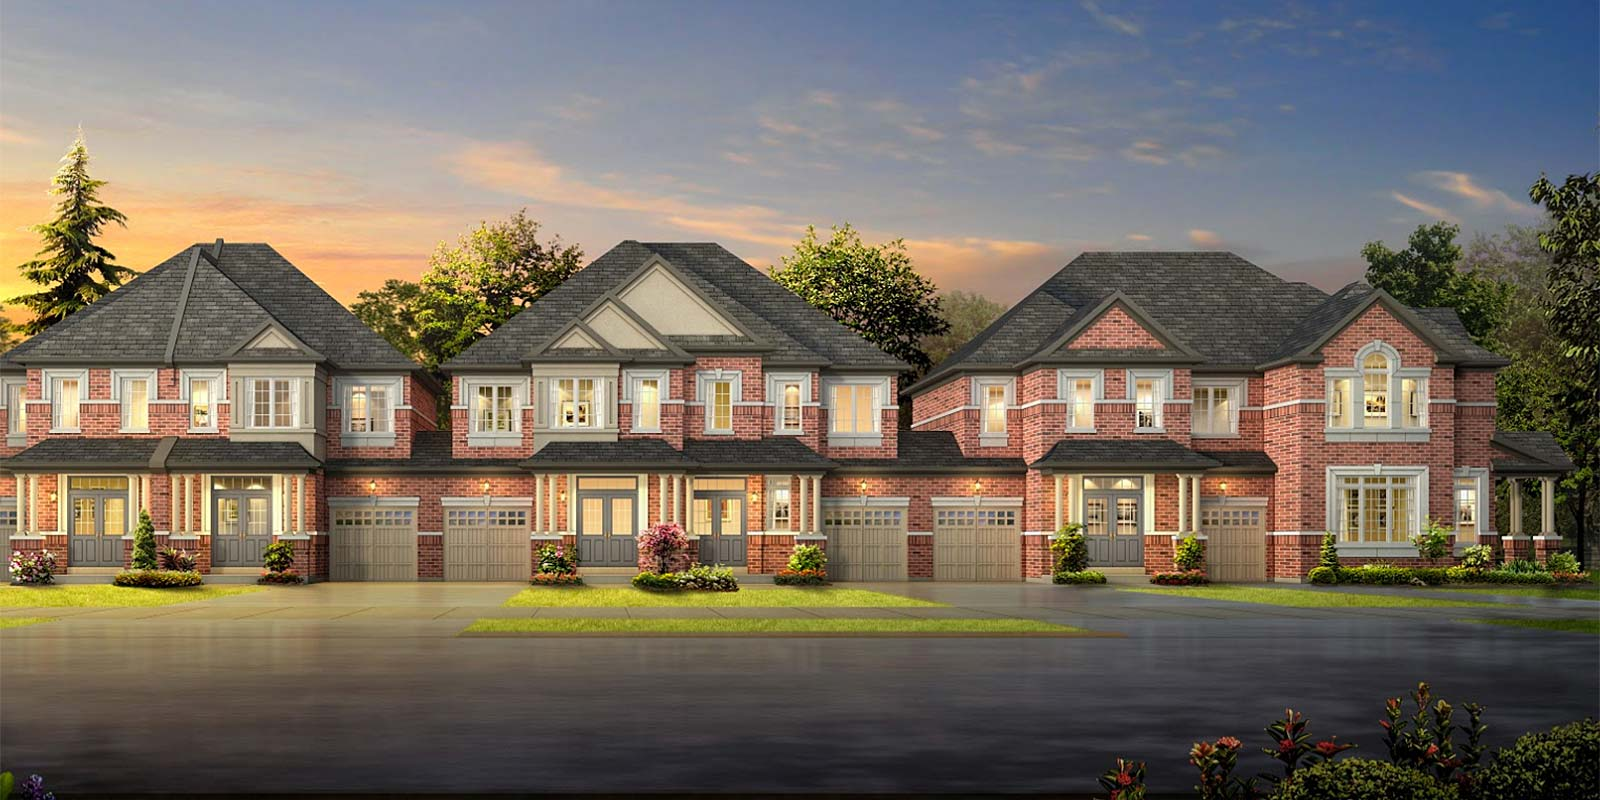 Available now: New townhouse blocks at The Preserve priced at the $700s